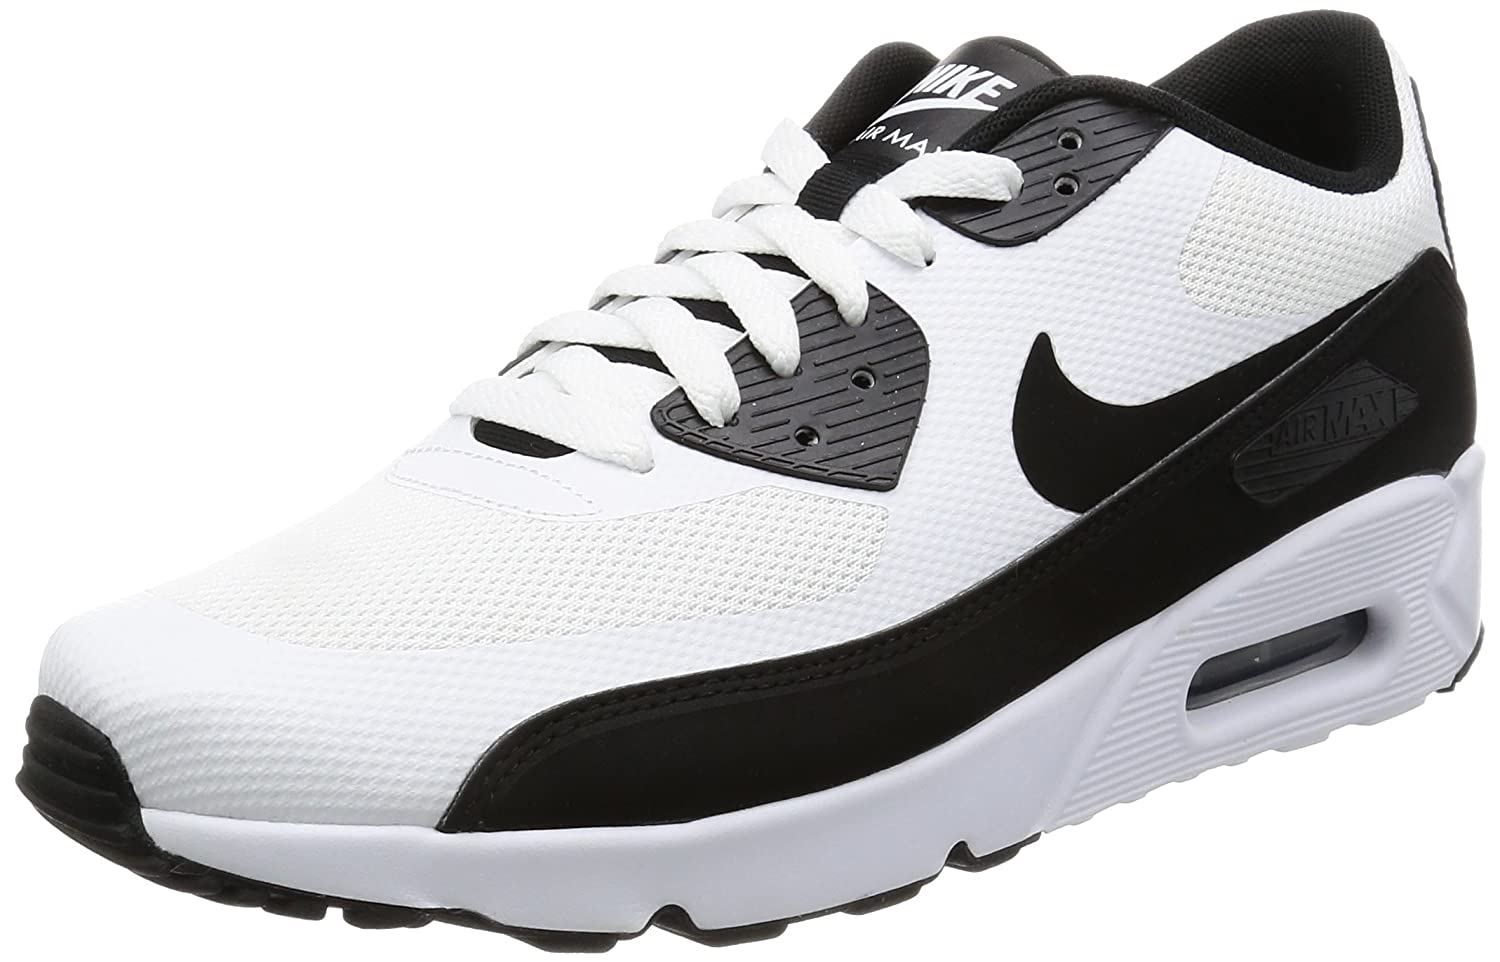 free shipping 6b910 4dbd7 Amazon.com | Nike AIR MAX 90 ULTRA 2.0 ESSENTIAL mens ...